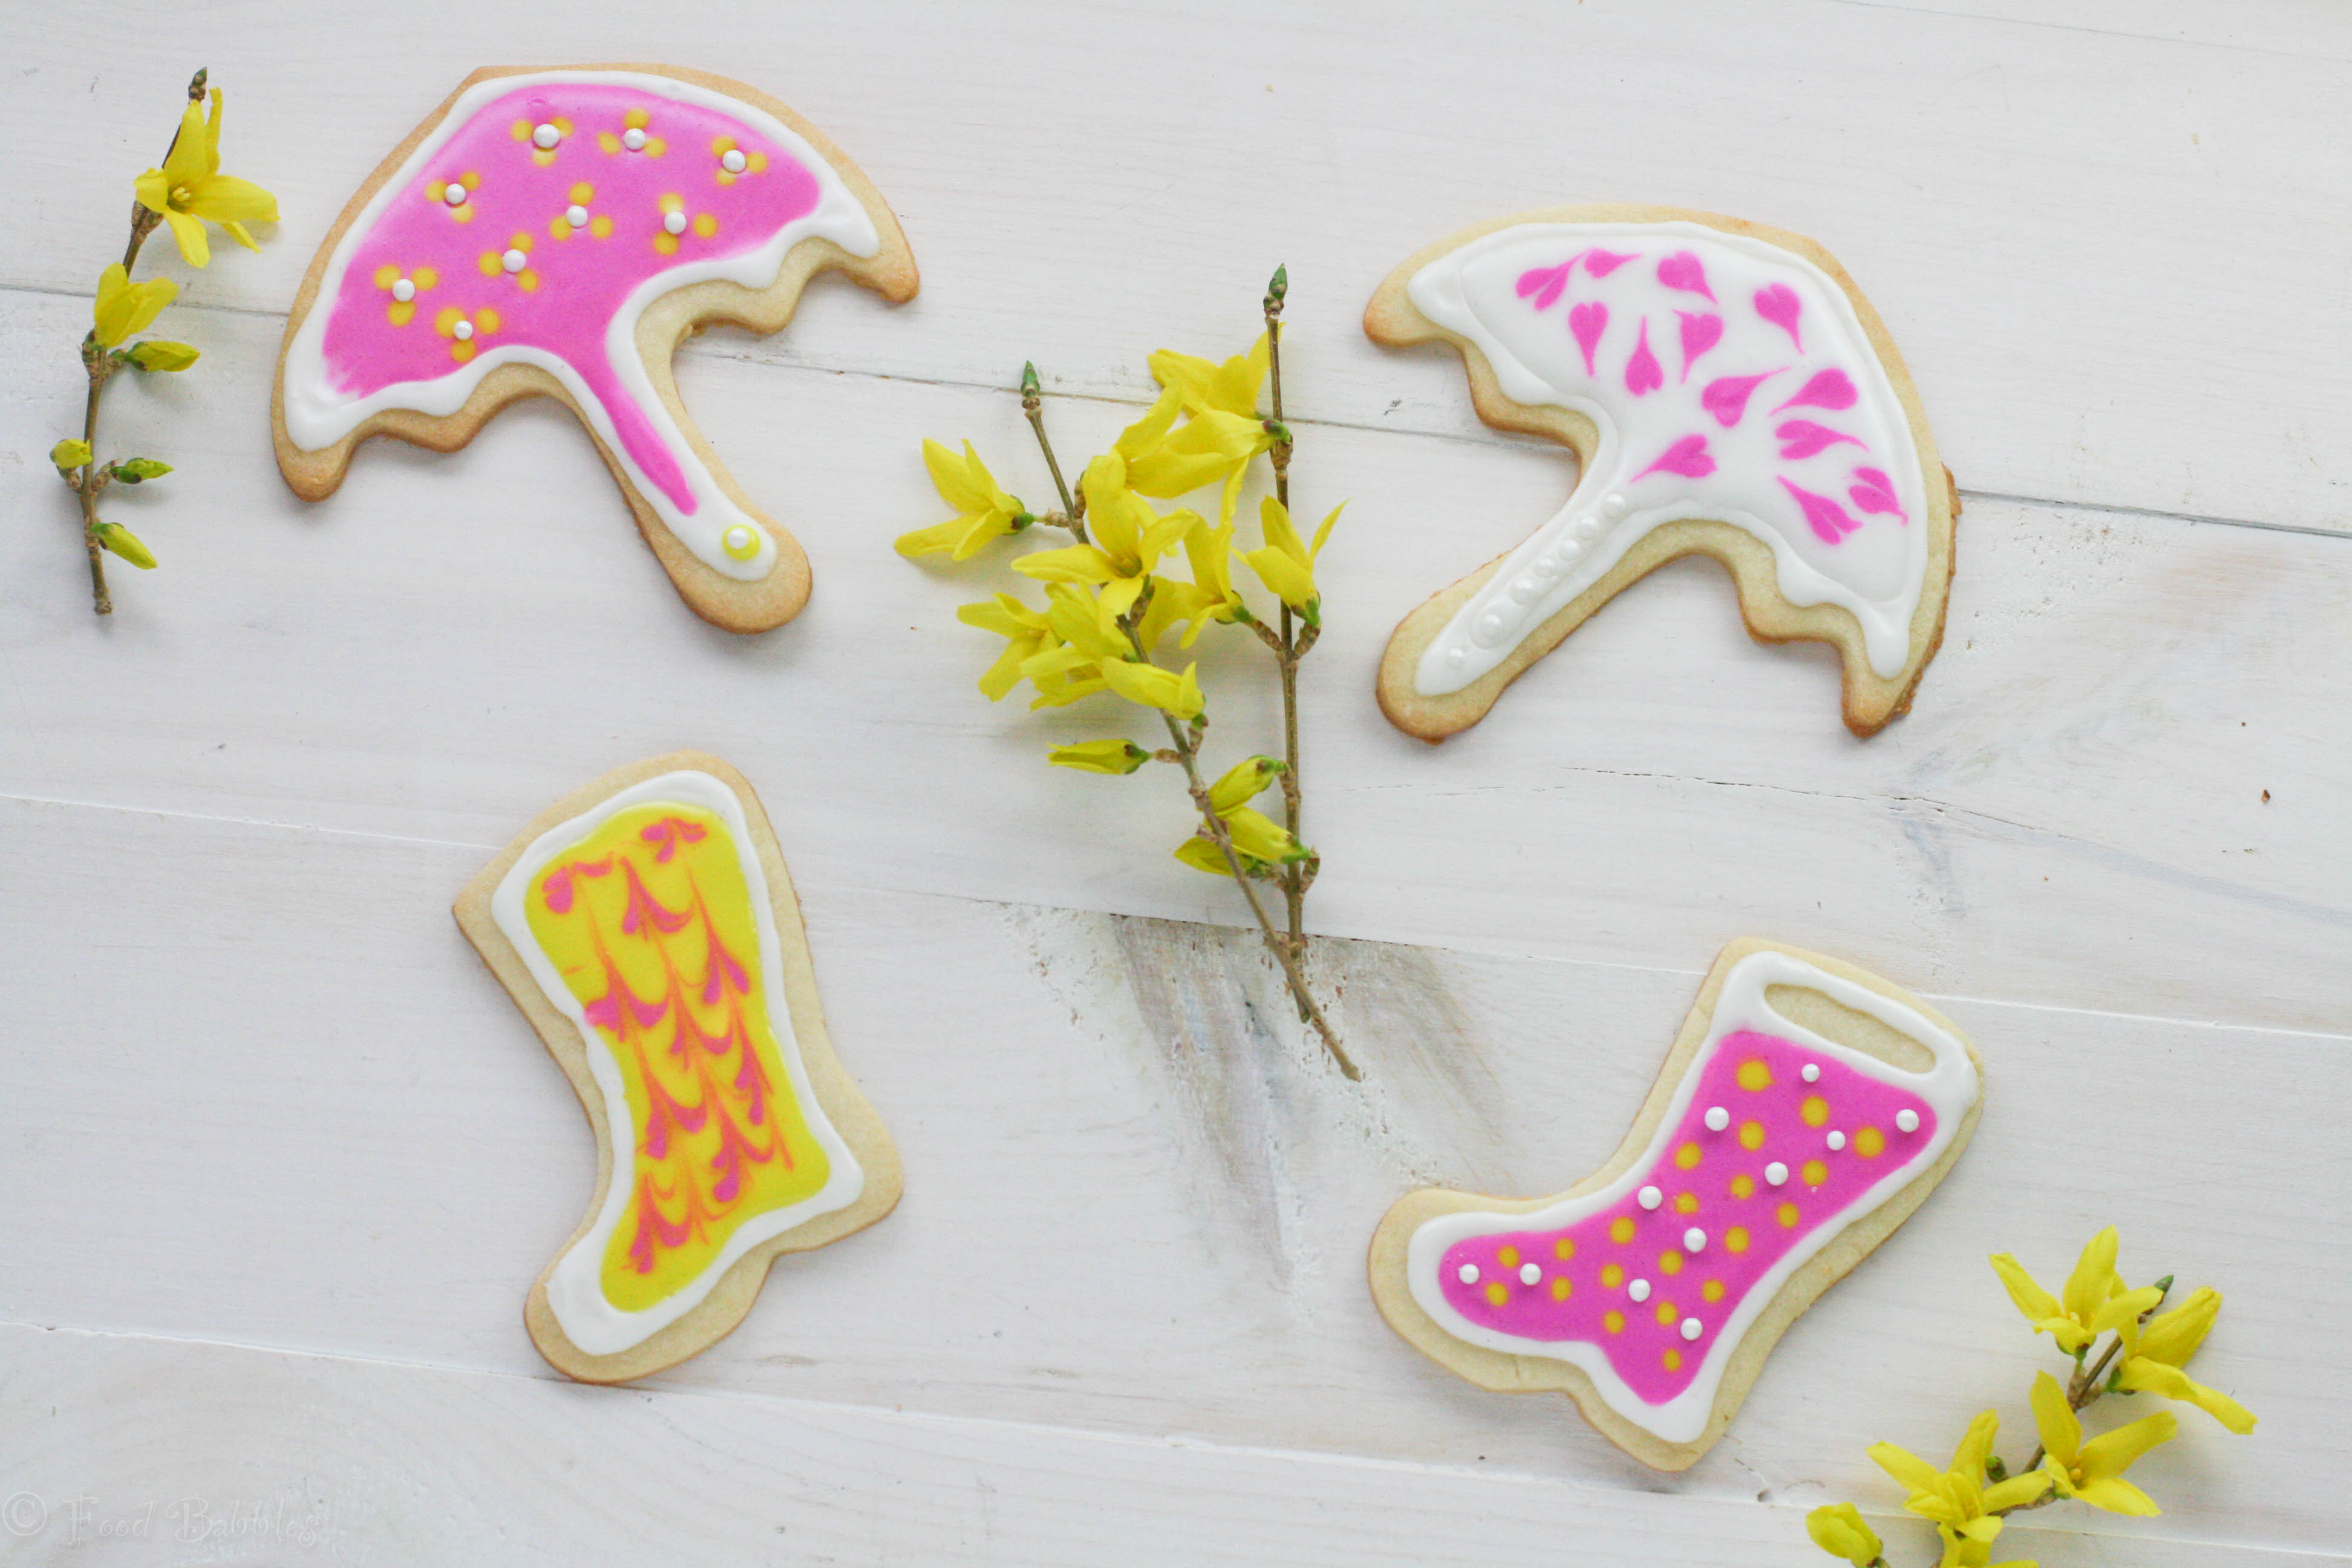 Decorating Sugar Cookies With Royal Icing Cookies With Royal Icing